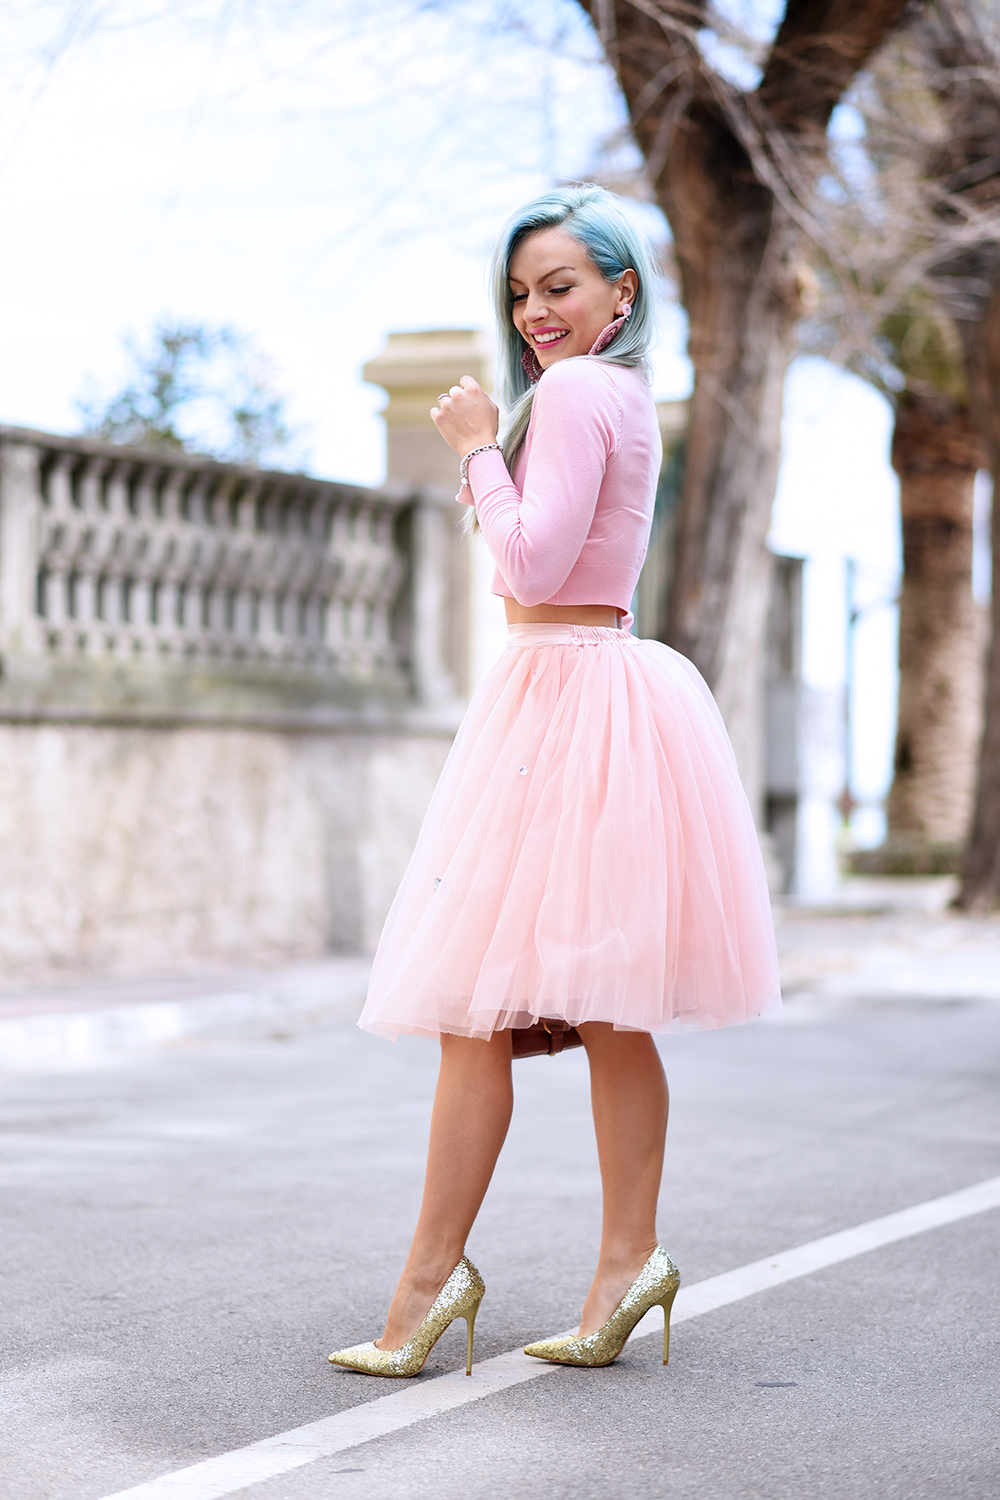 How to wear a Tutu skirt, tulle skirt, Chicwish Italia, Miss Guided h [...]</p> 			</div> 			 							<div class=